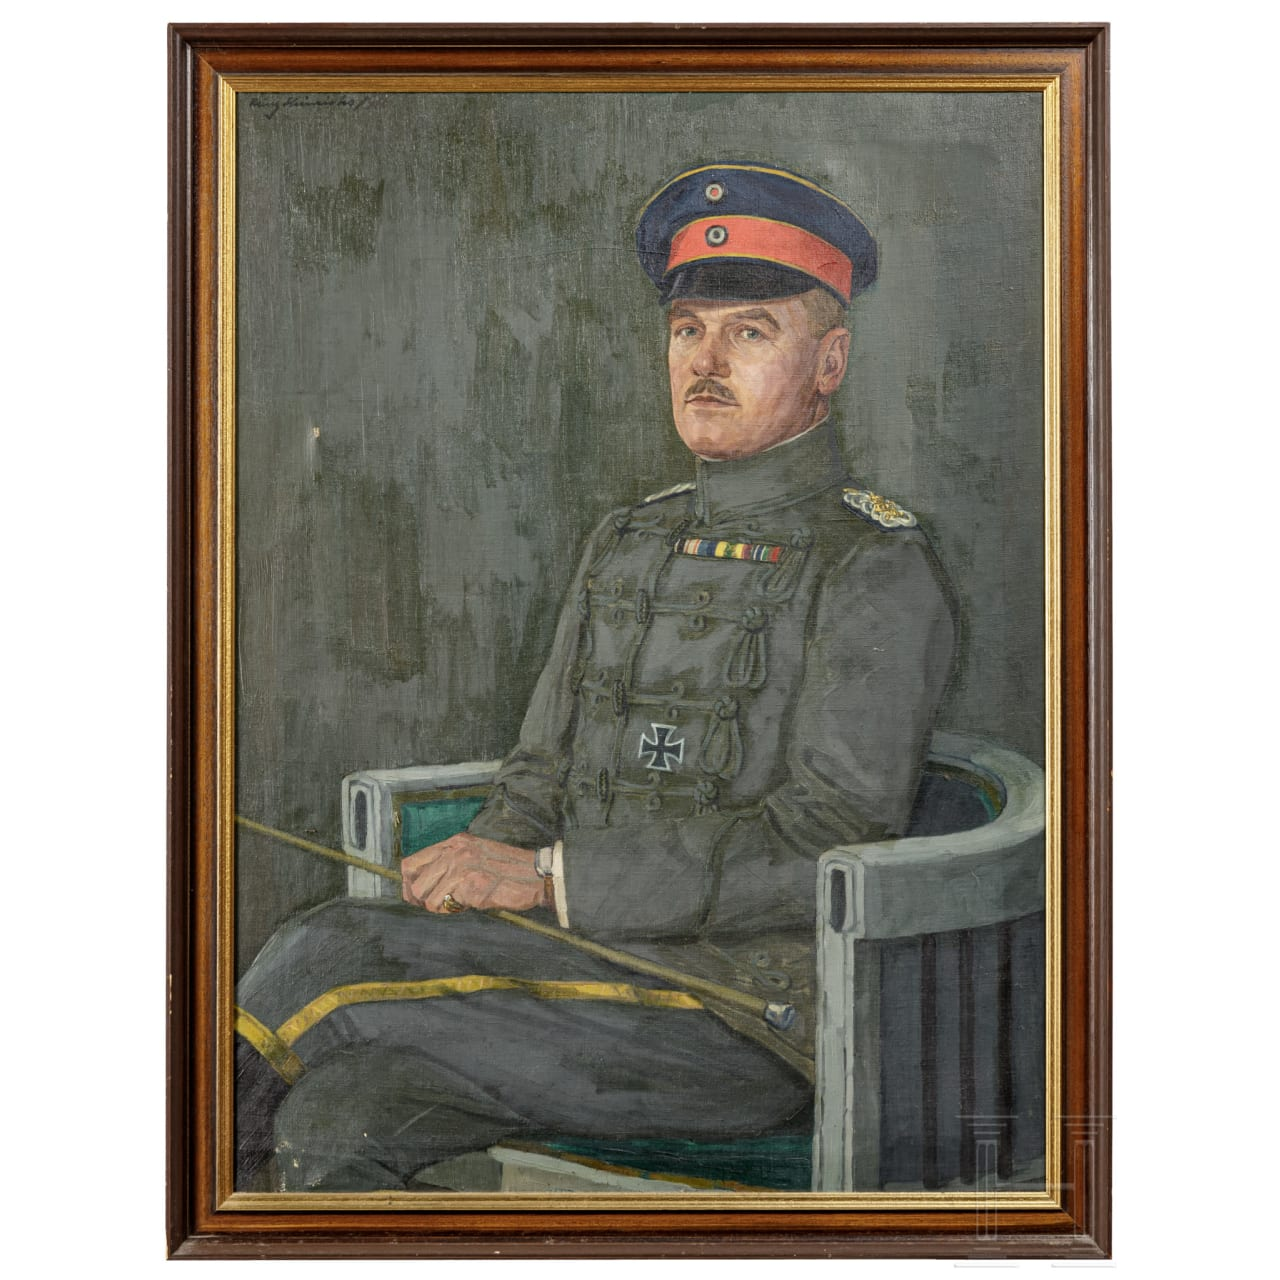 A portrait painting of a major of the hussars